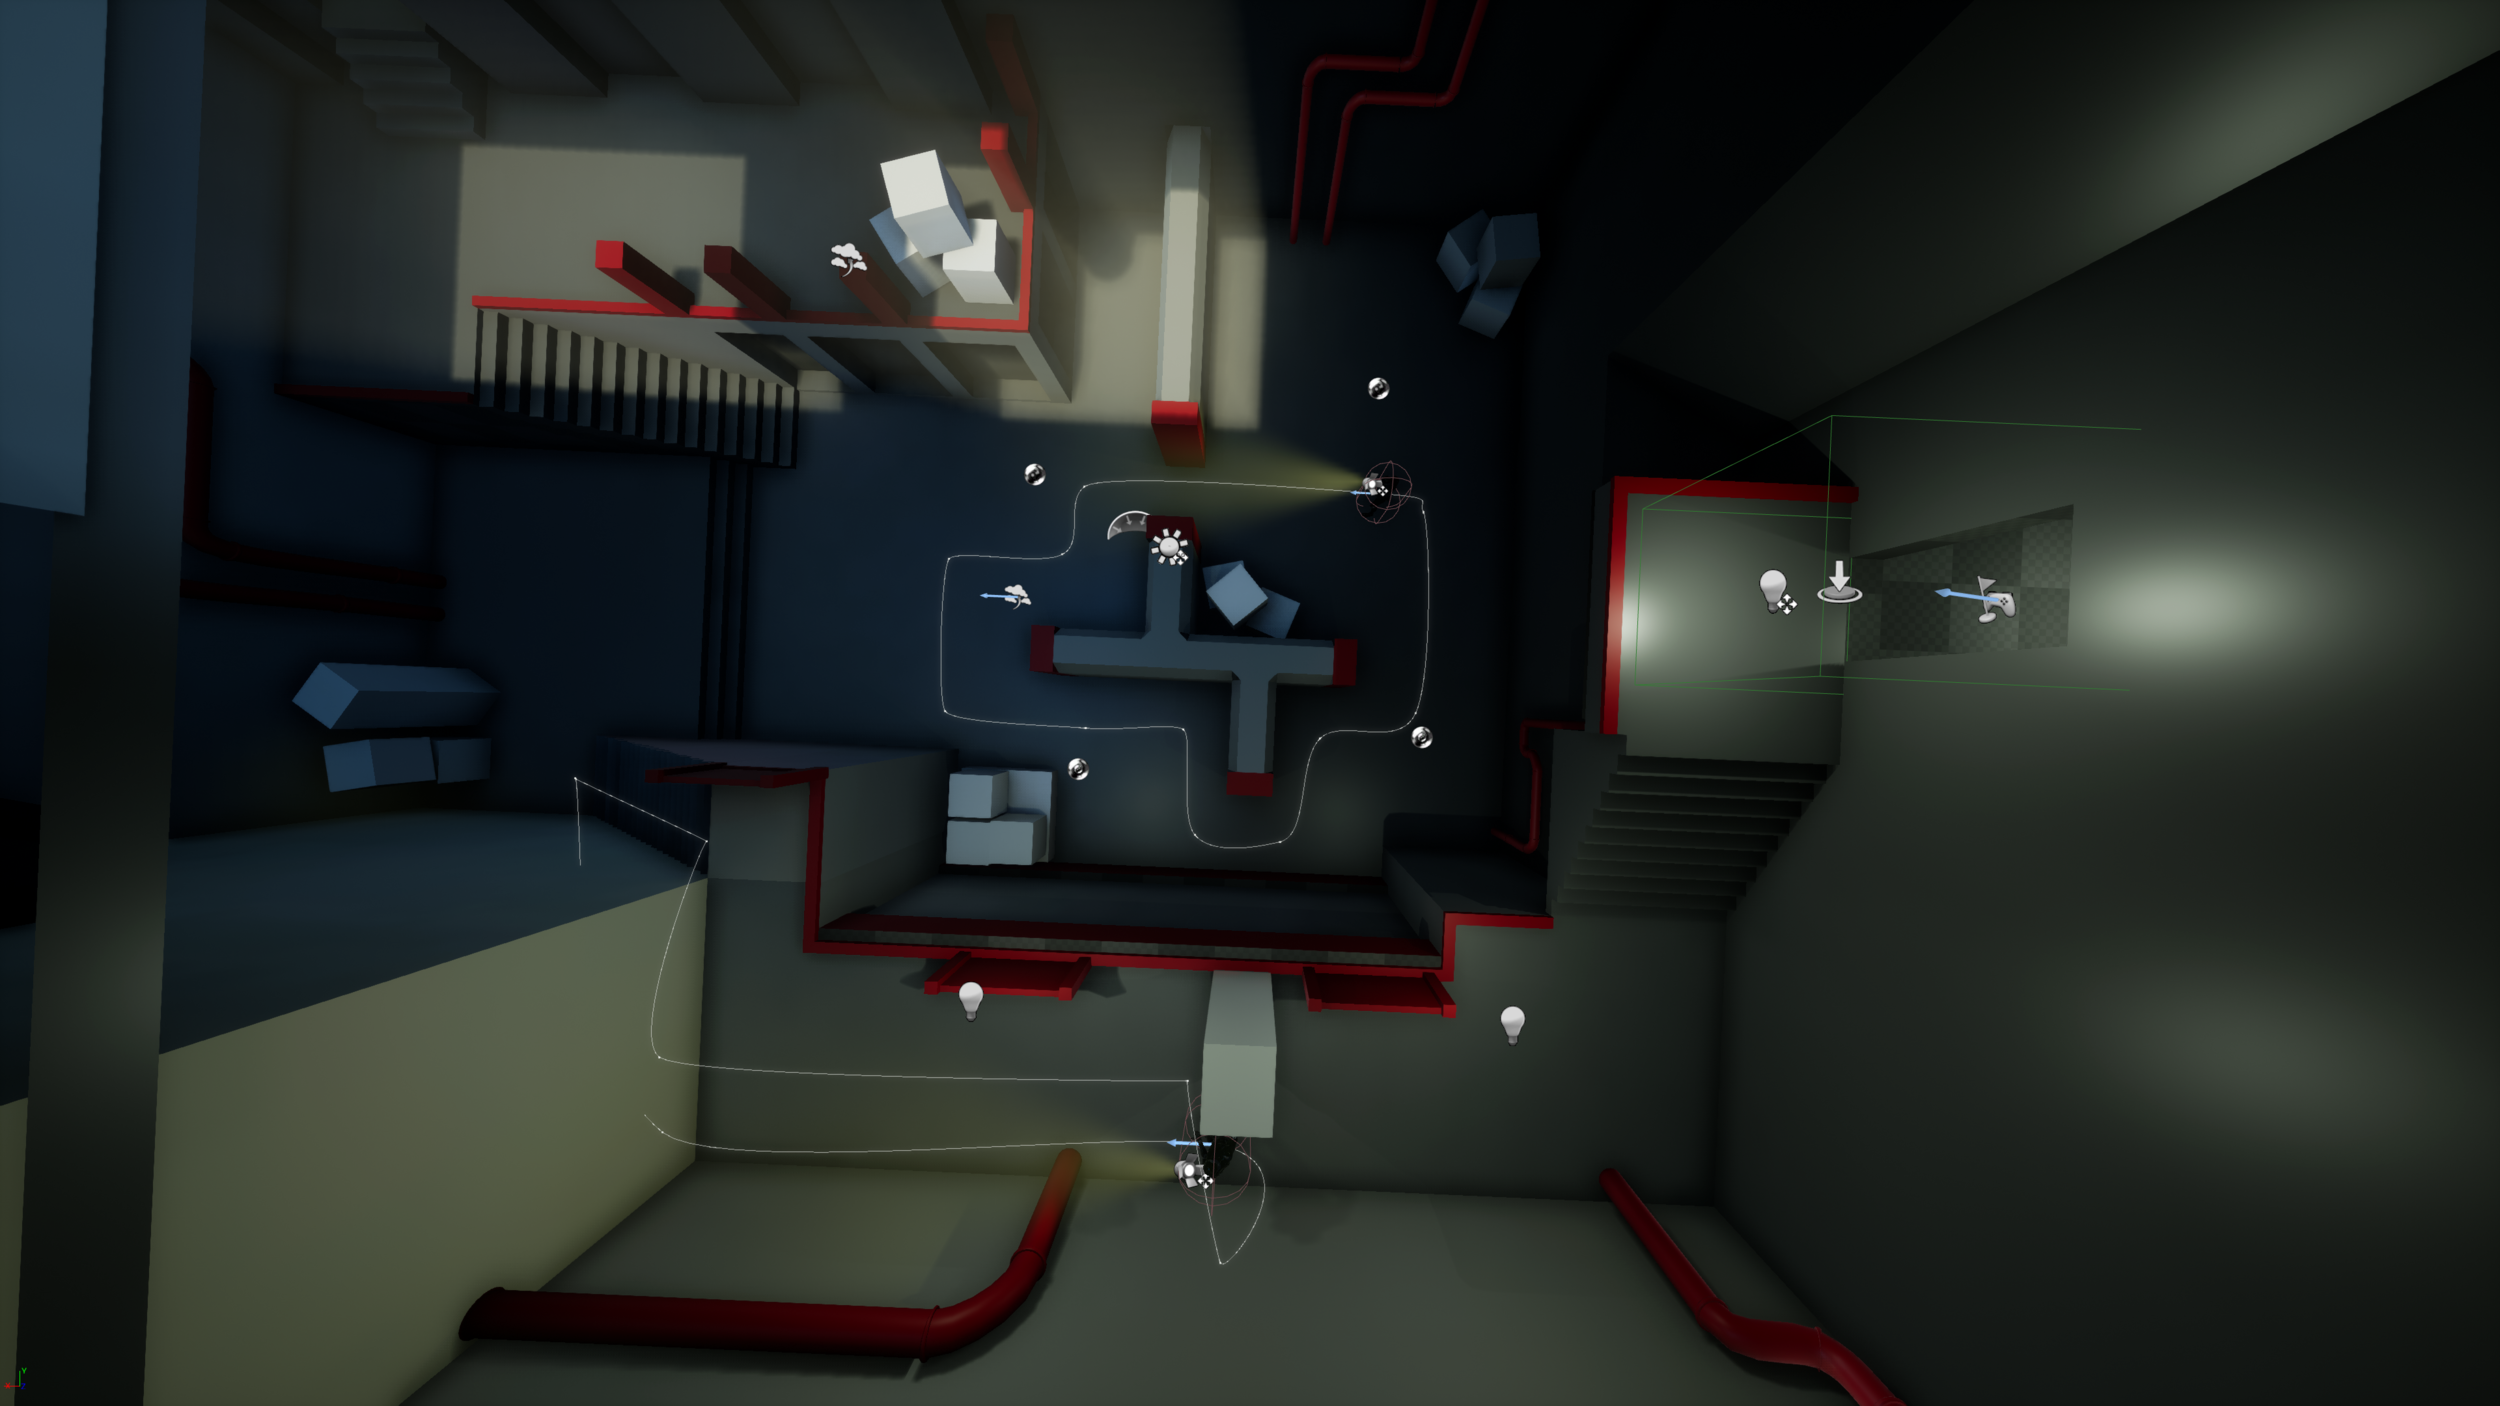 Final version of the level.